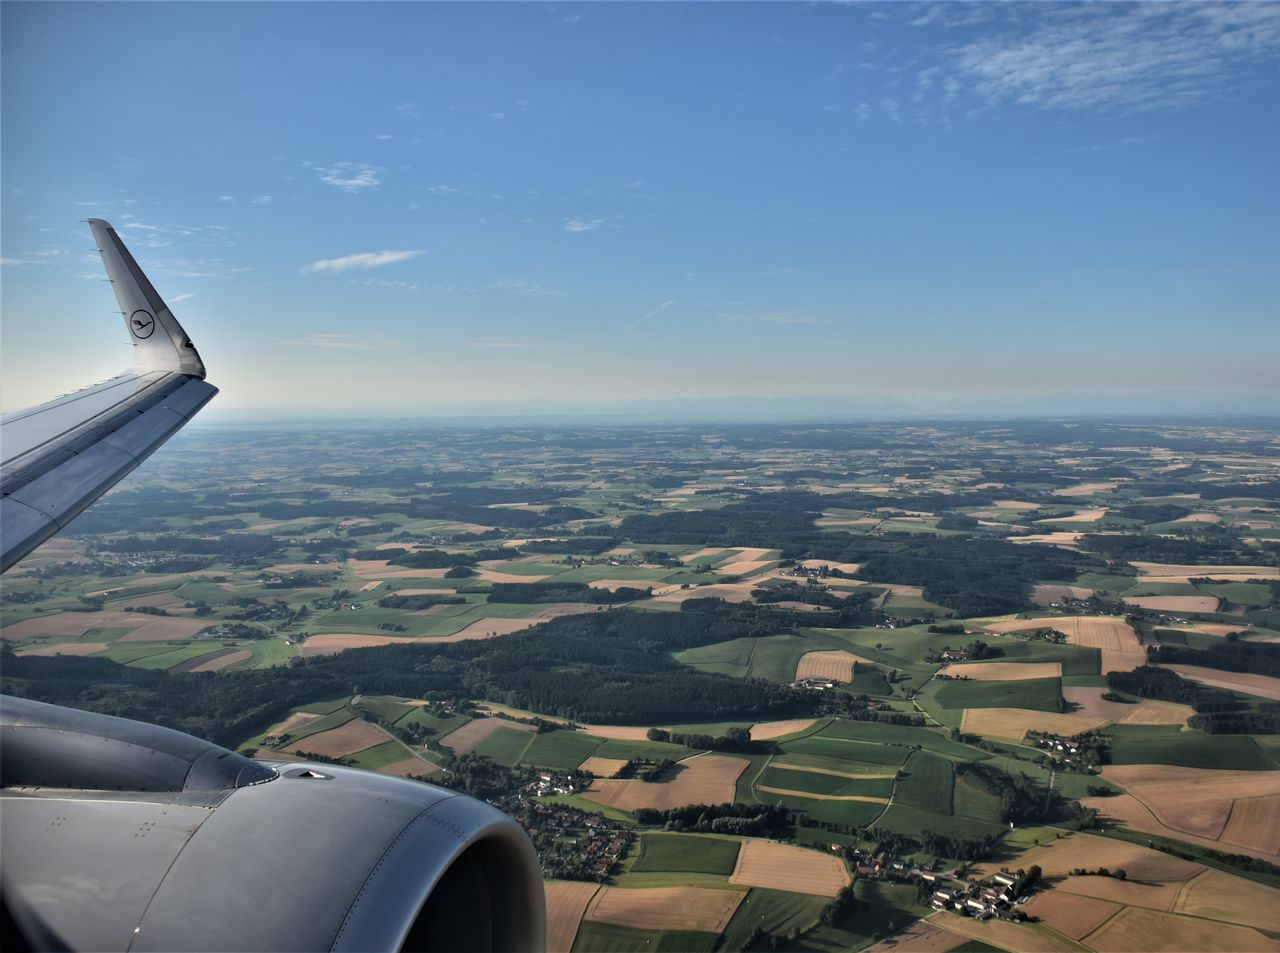 Munich paris the flight to long from how is